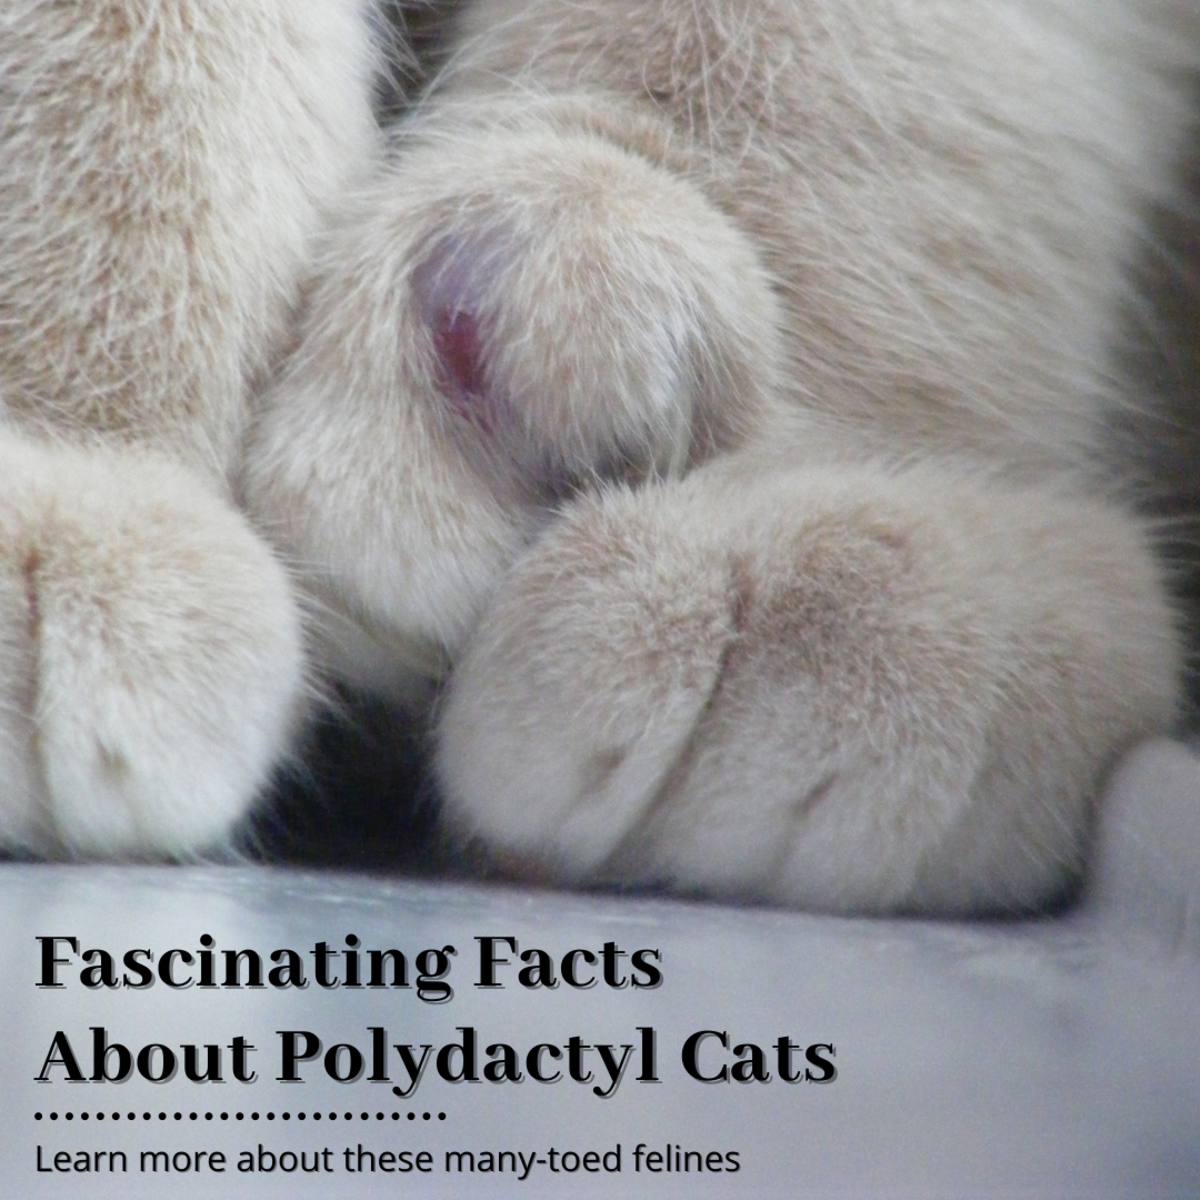 This article will break down everything you need to know about polydactyl cats and what makes them special.